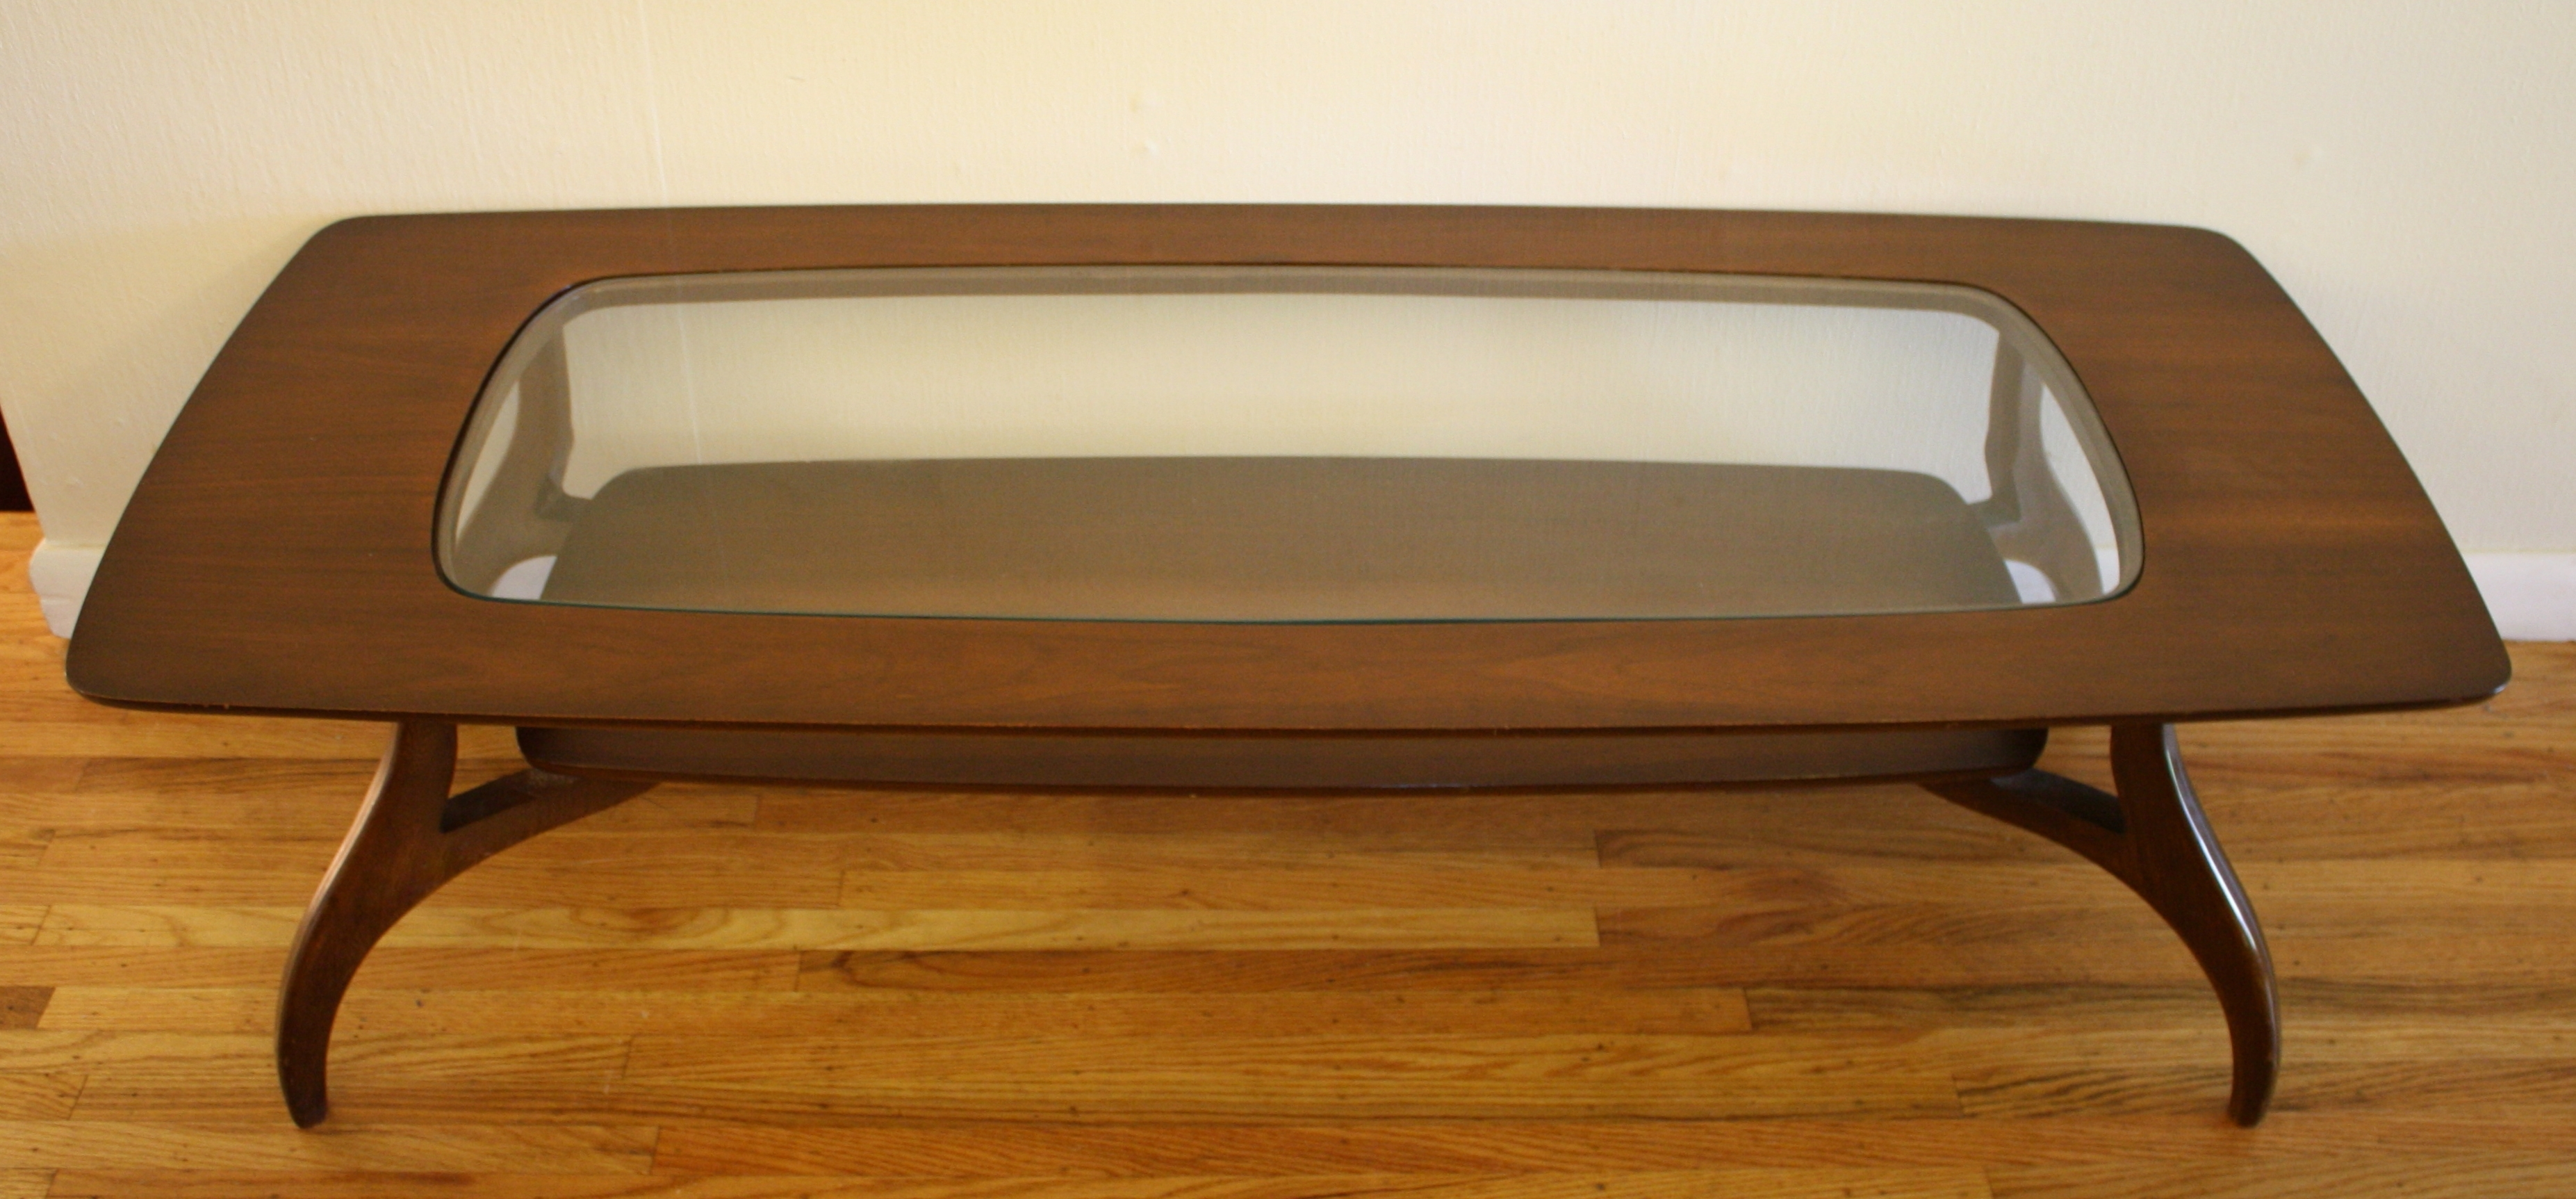 Picked Vintage Pertaining To Newest Smart Glass Top Coffee Tables (View 13 of 20)